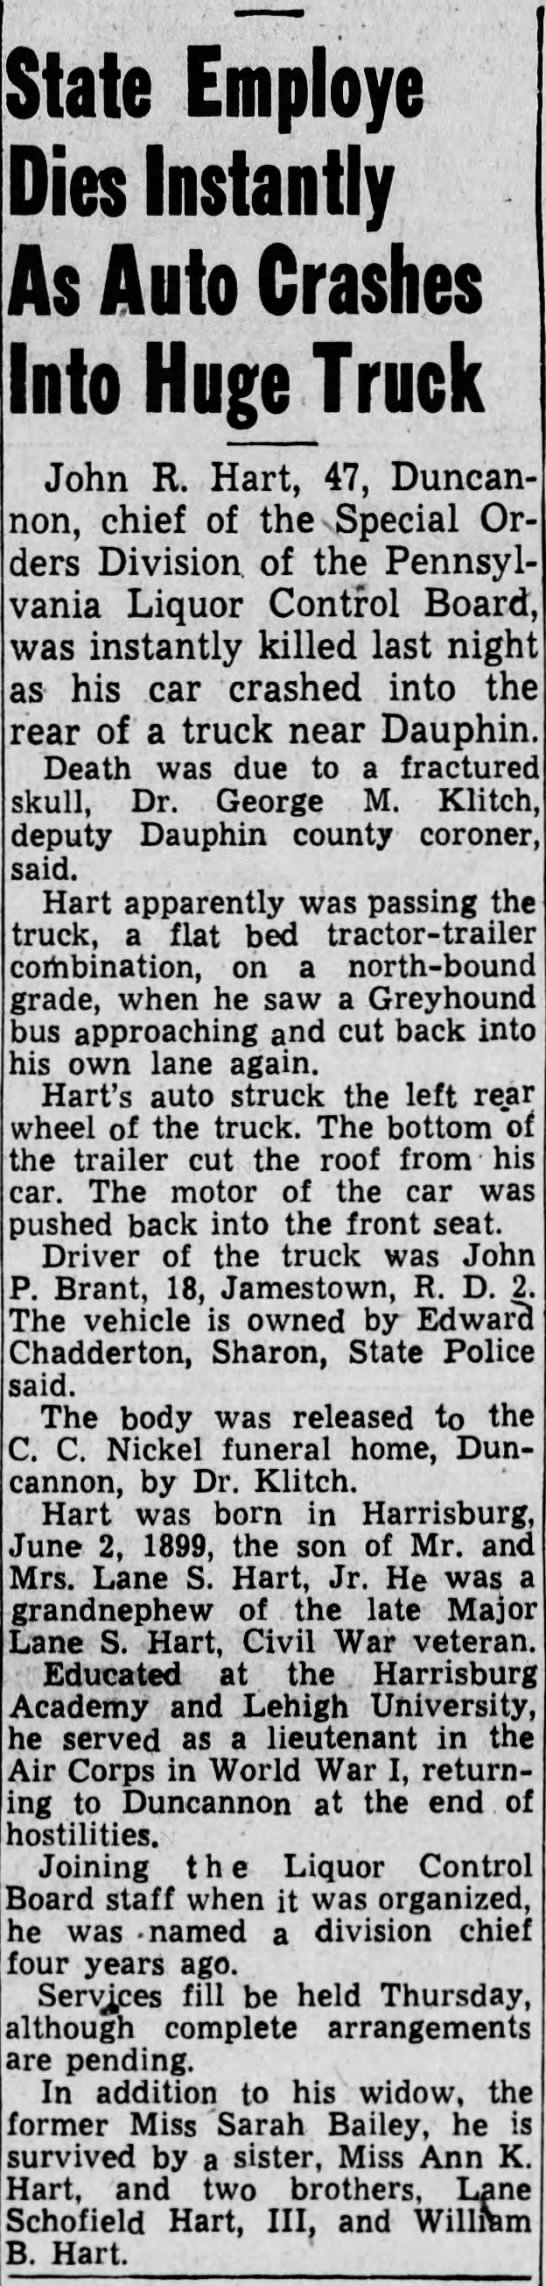 john-r-hart - State Employe Dies Instantly As Auto Crashes...